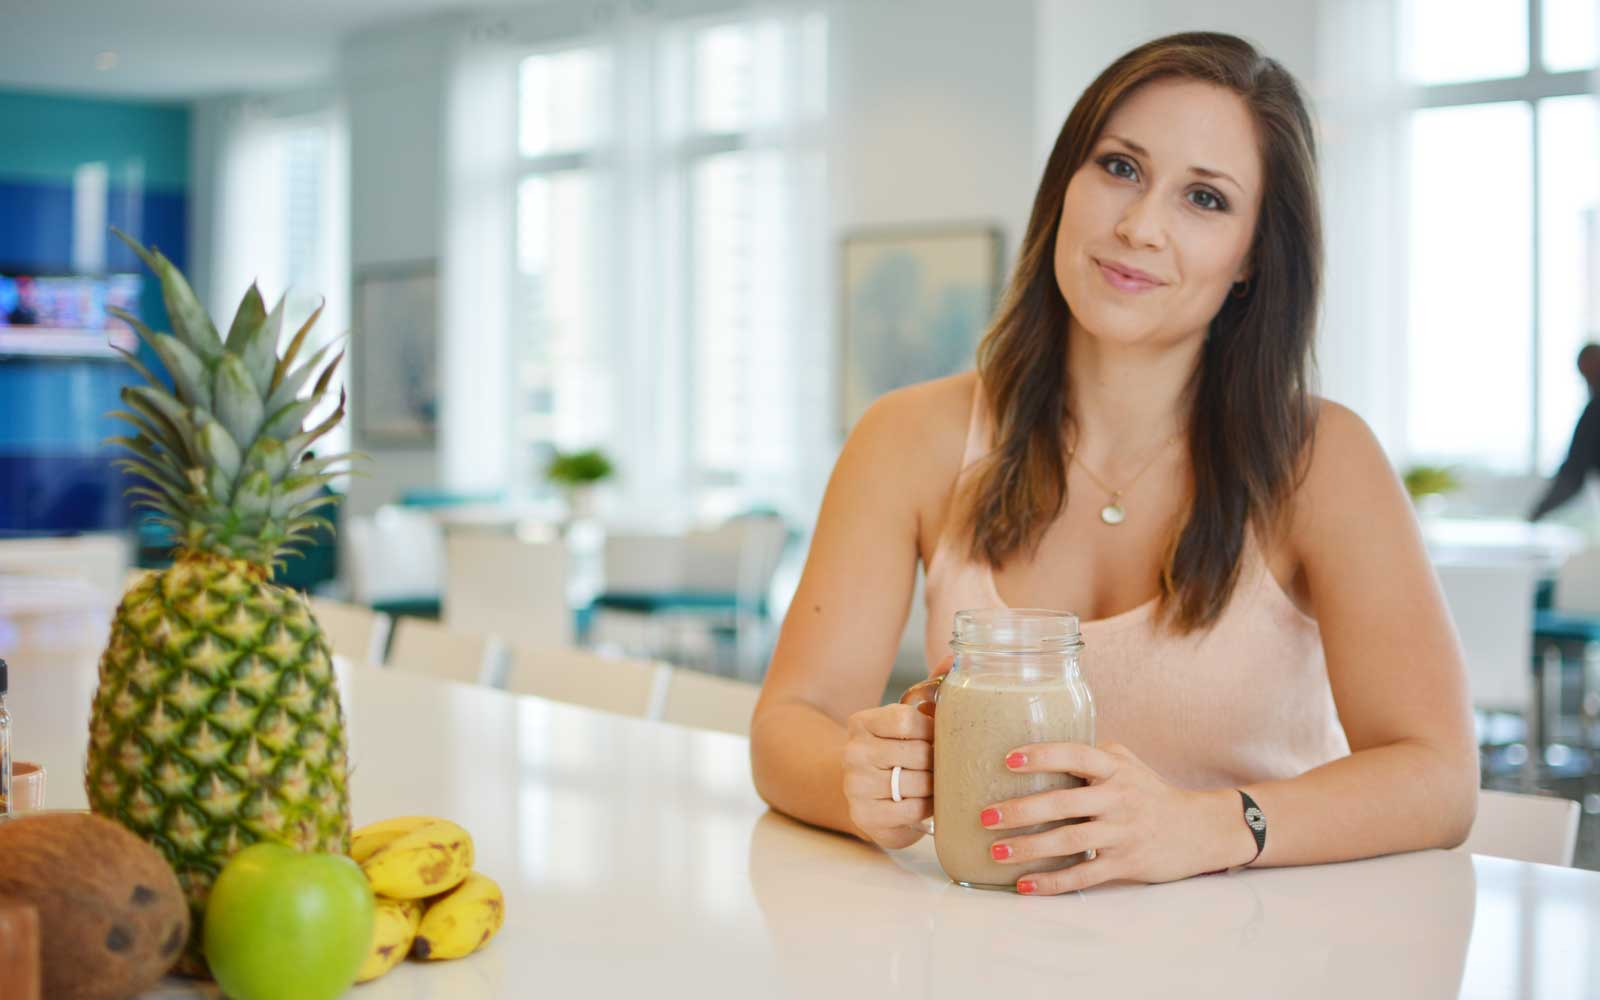 Monika Arenas, RD, helps guests with healthy grocery shopping at the Carillon Miami Wellness Resort